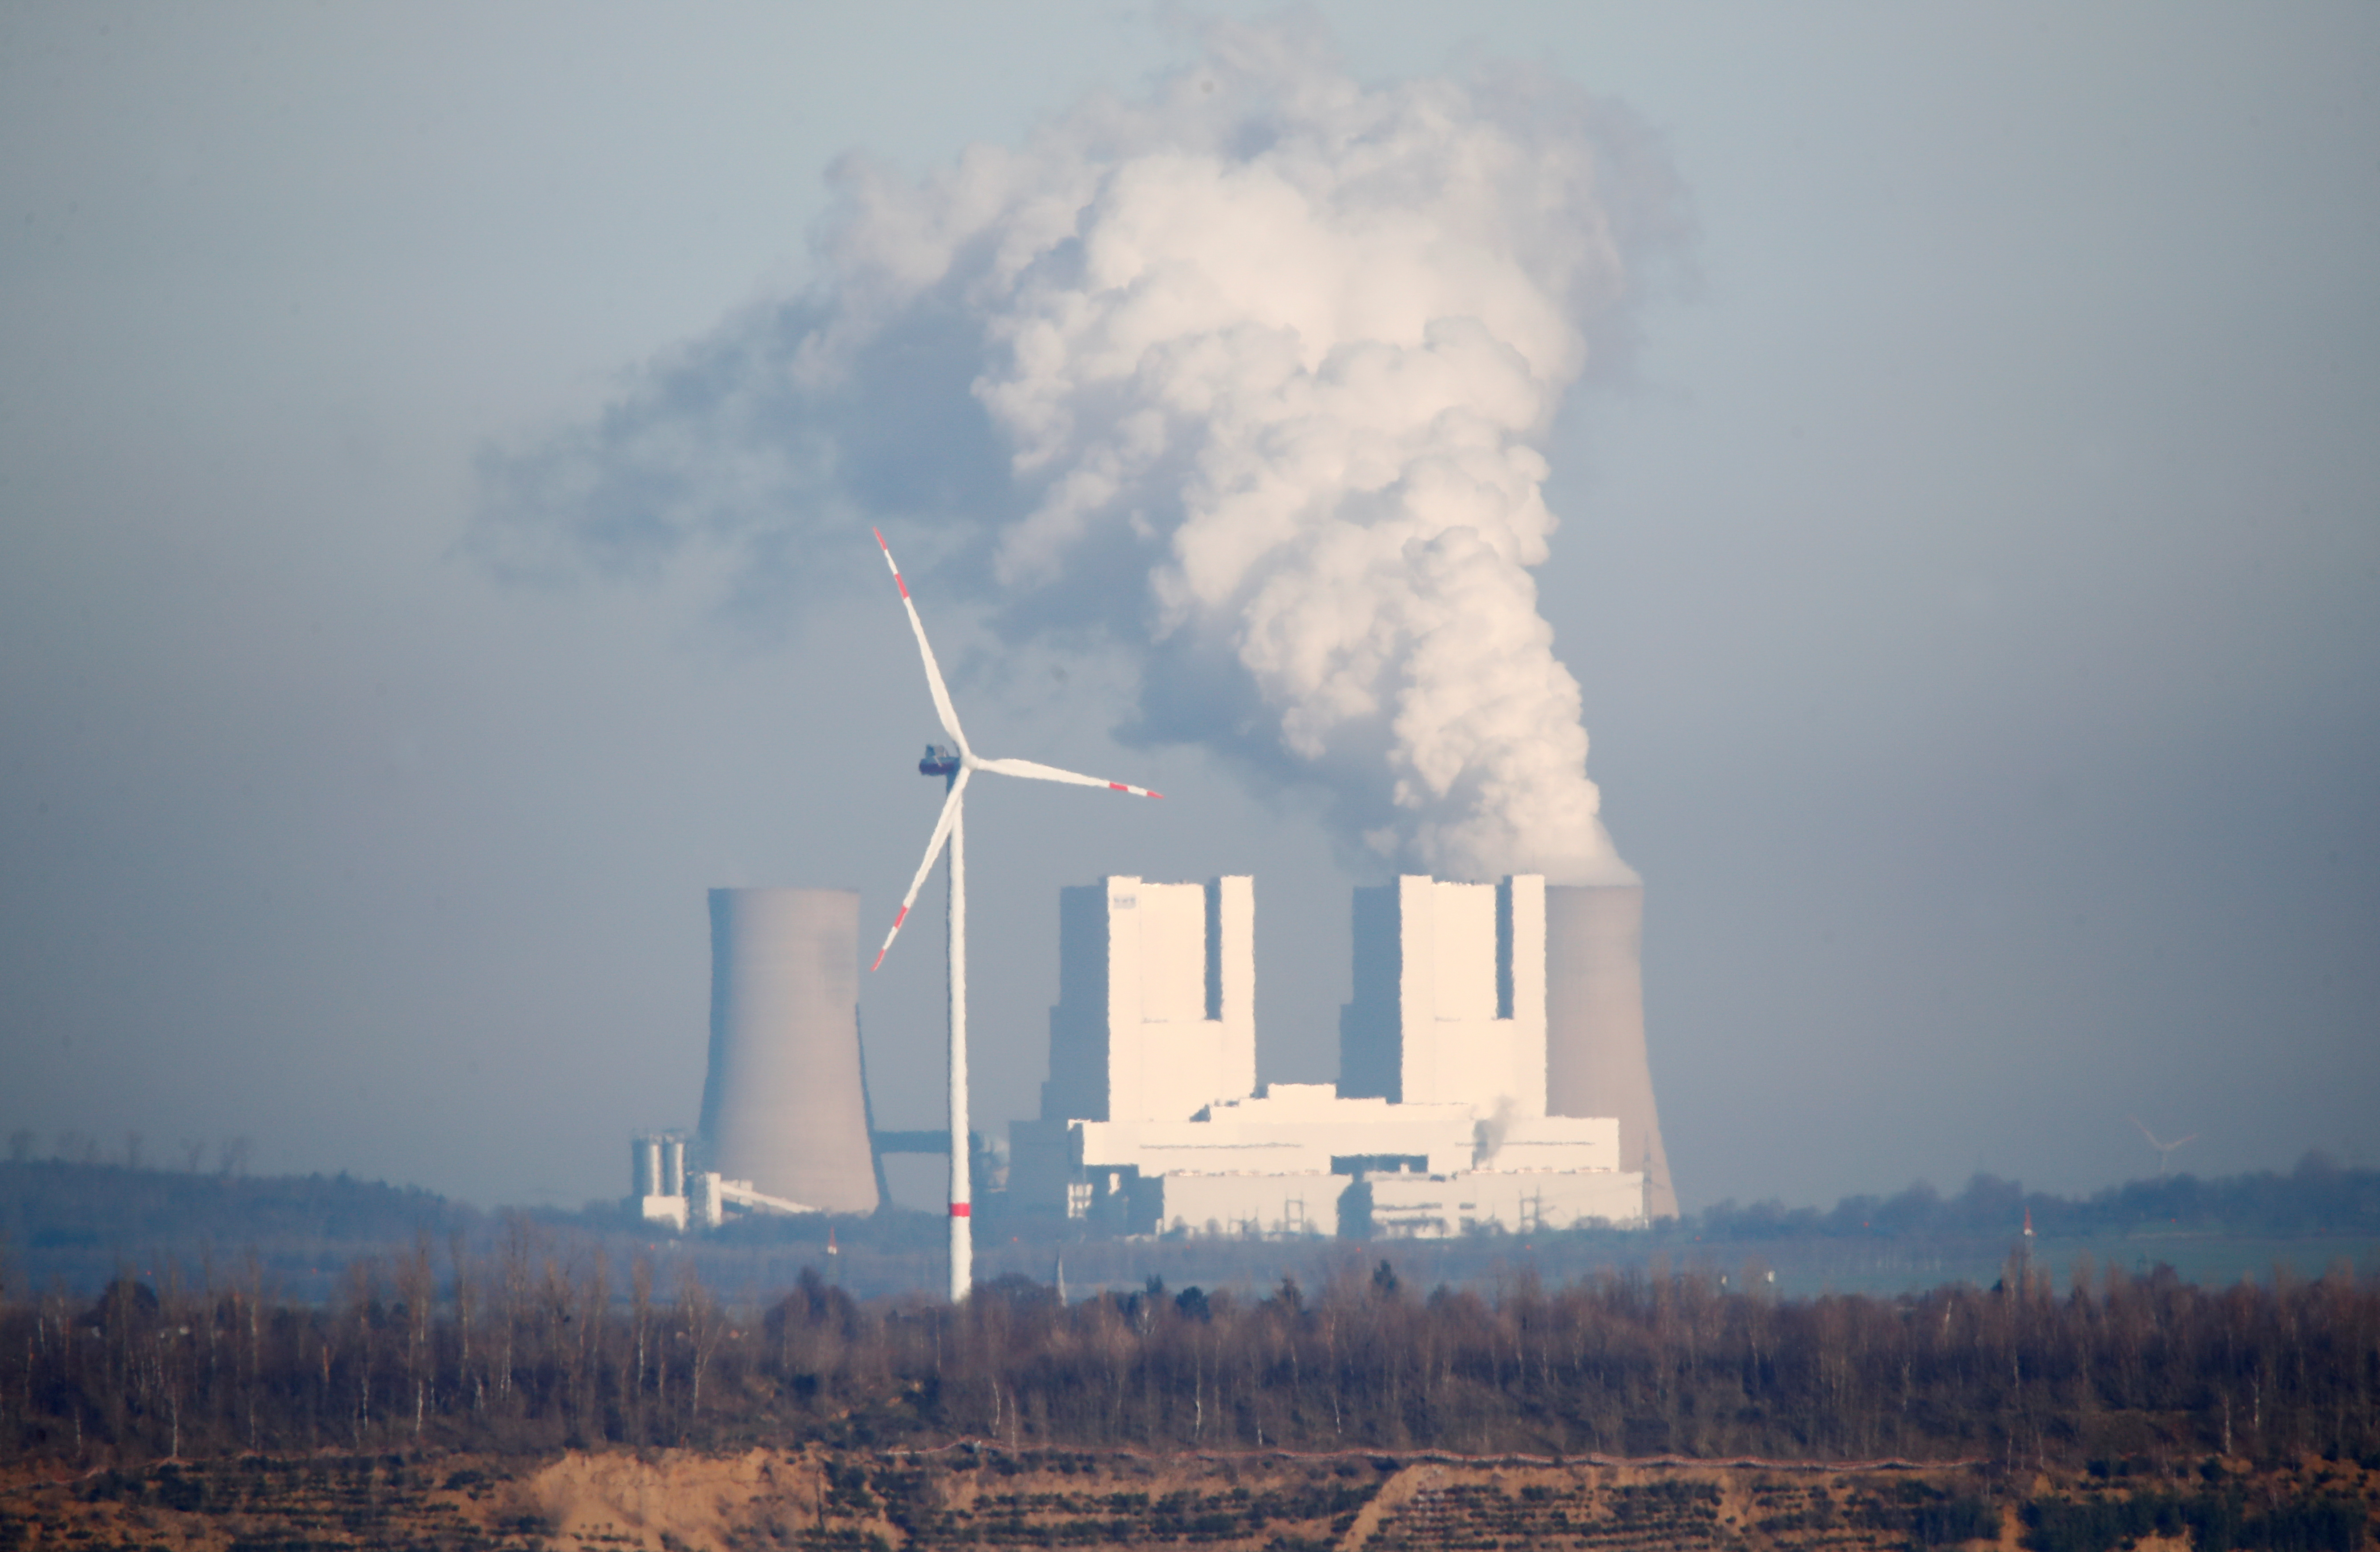 Steam rises from Neurath lignite power plant, in Grevenbroich, Germany, January 16, 2020. REUTERS/Wolfgang Rattay